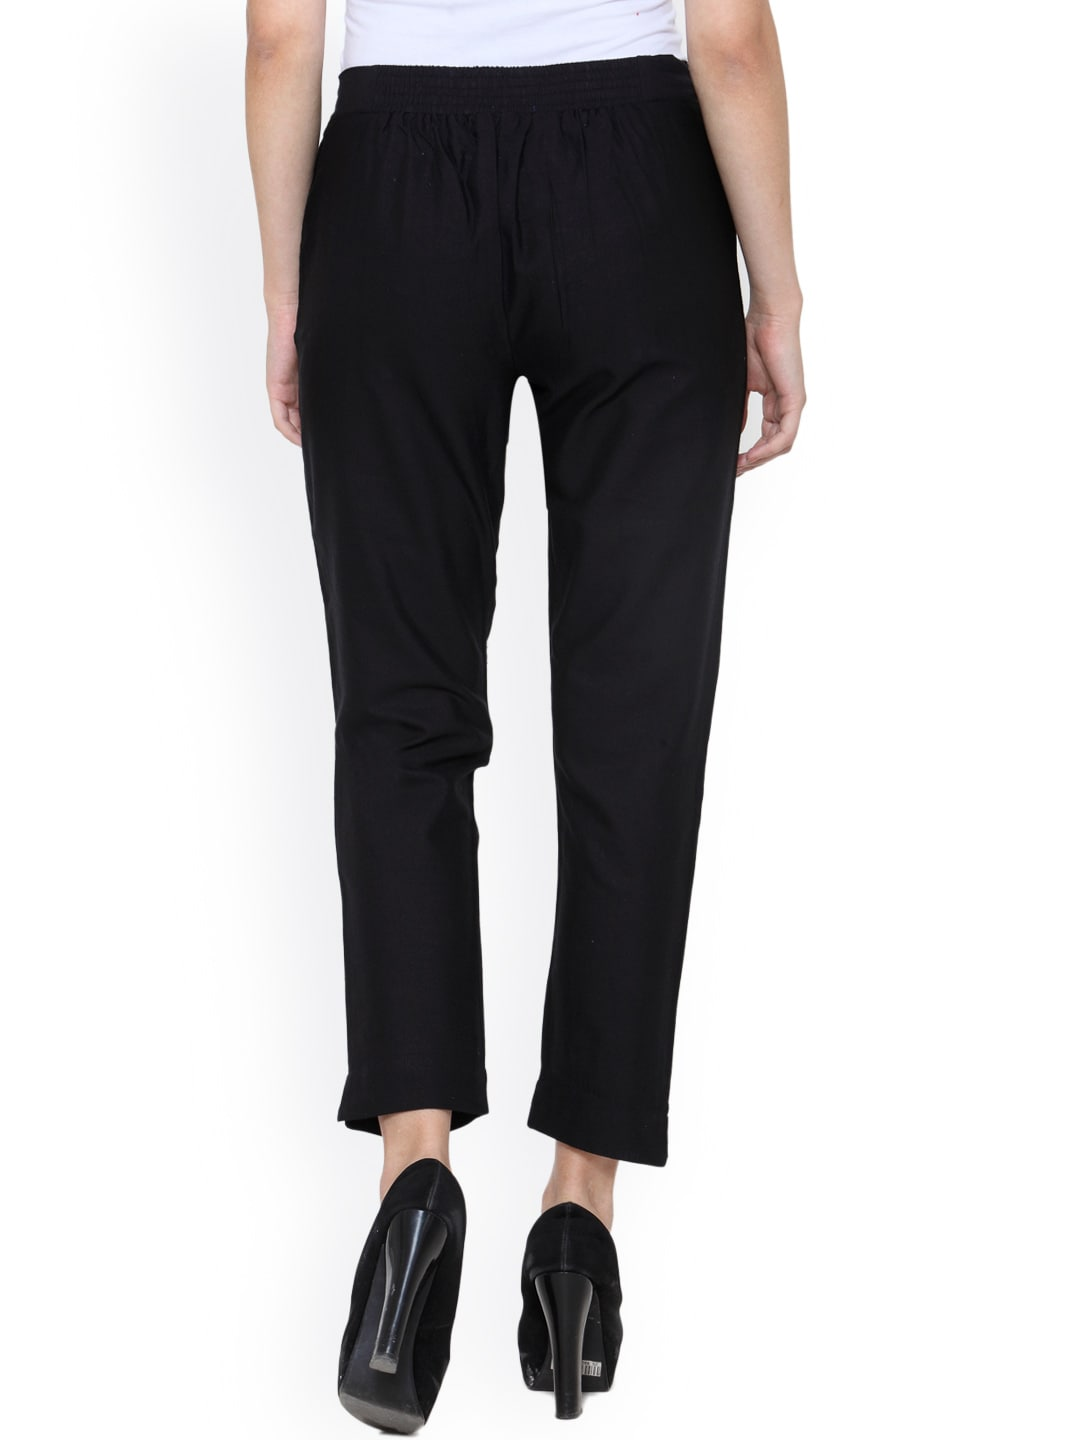 Create signature styles from the variety of hip cuts of trendy capri pants for women from Old Navy. An Updated Wardrobe Staple Offered in Multiple Styles Discover a fresh approach from the edited updates to a basic wardrobe staple in this collection of trendy women's capris.